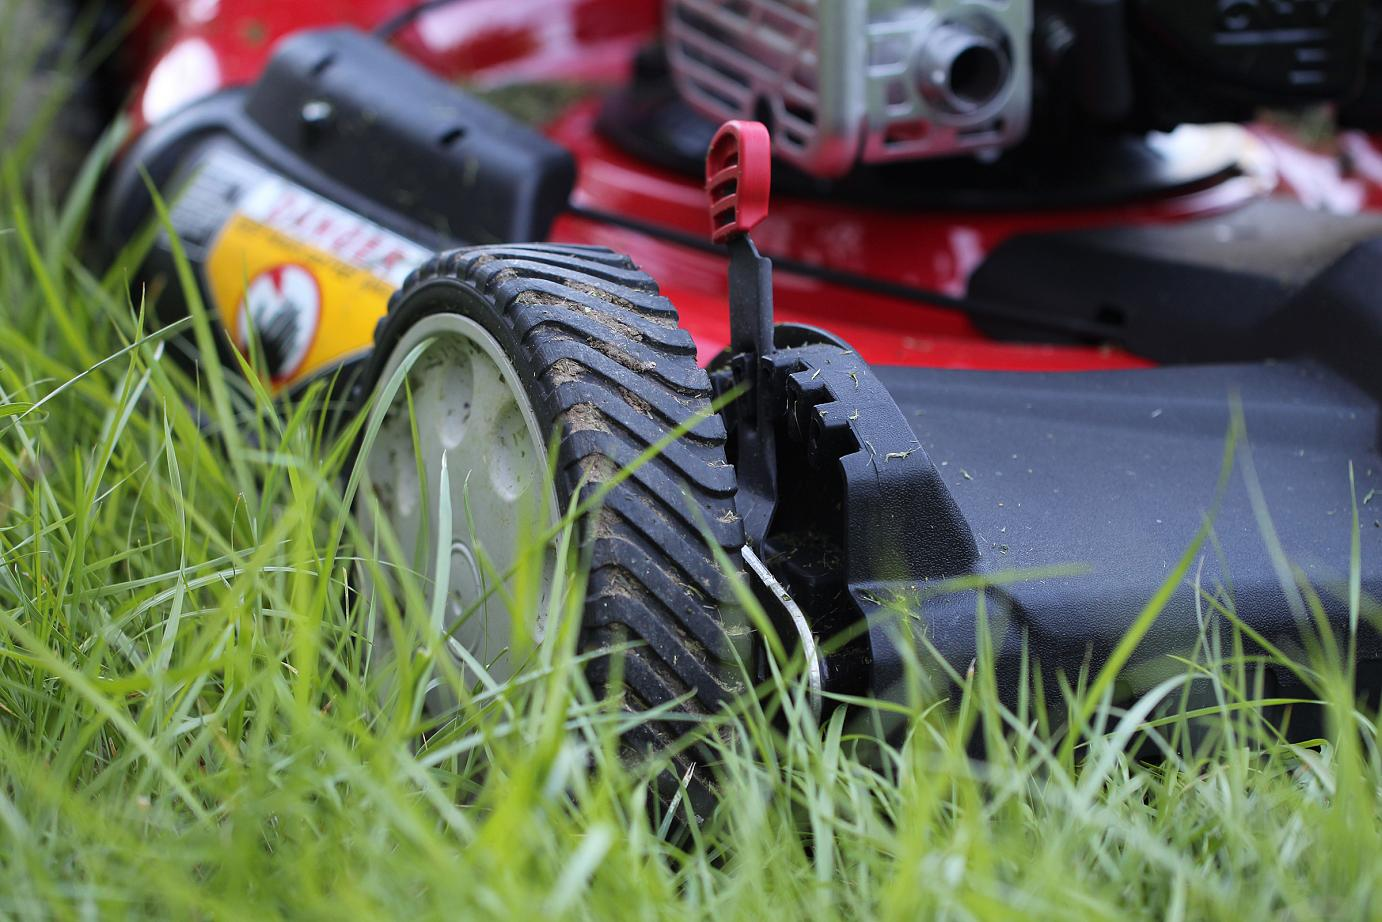 syntheticgrass Do You Like To Mow The Lawn? Then You Better Think Twice Before You Do It